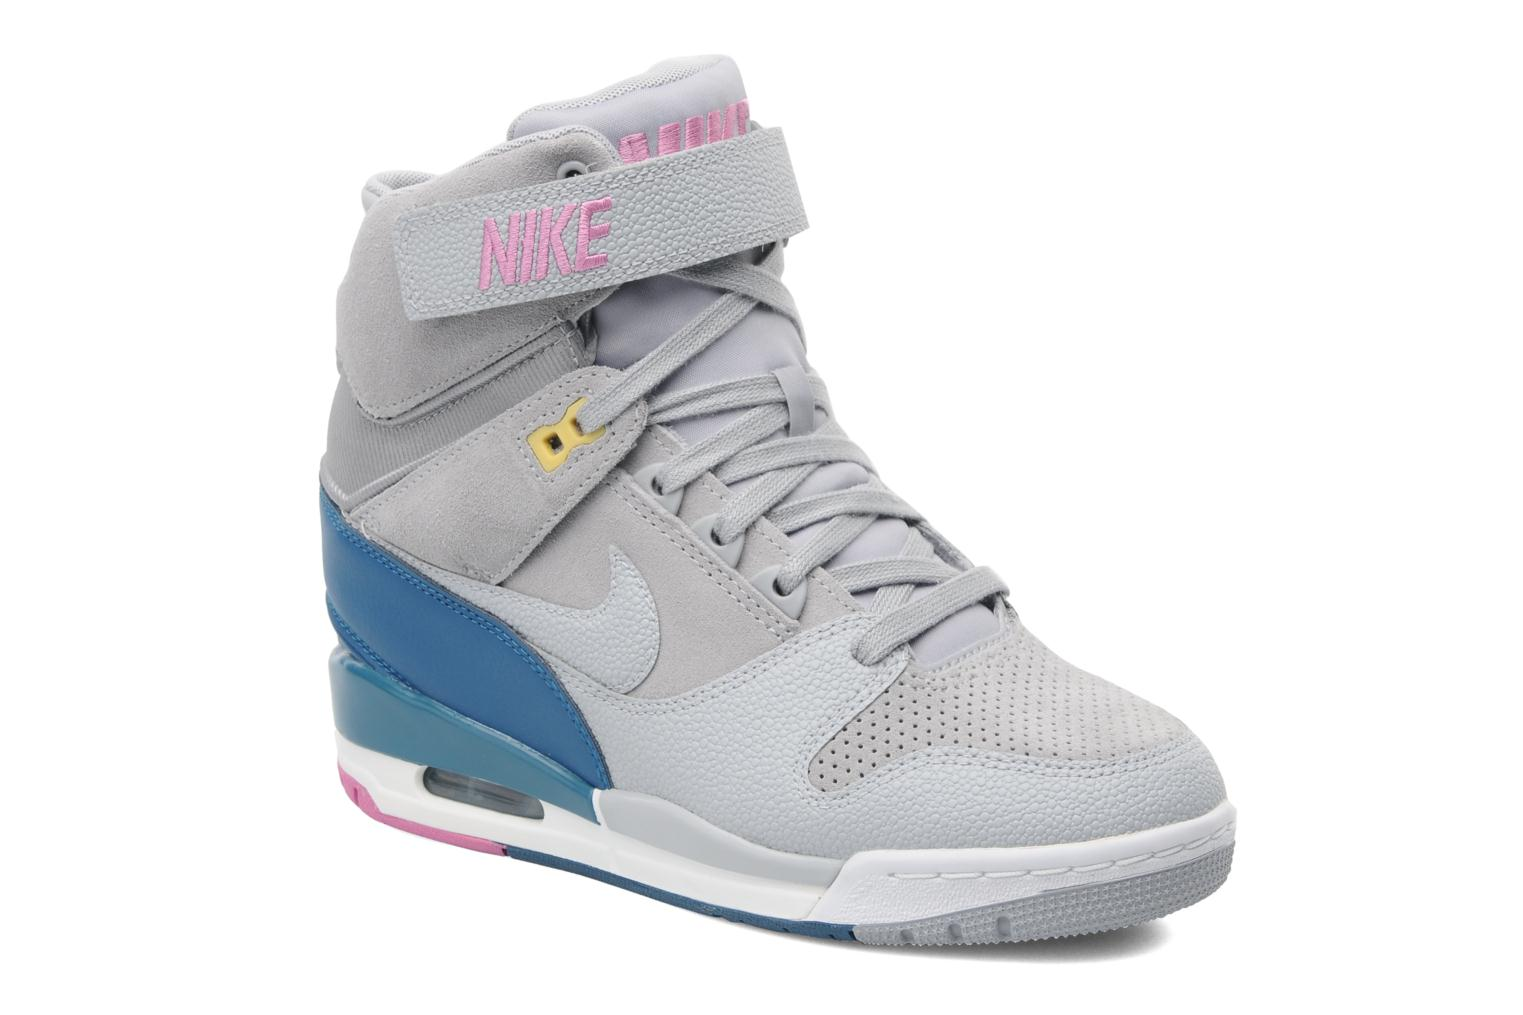 nike wmns nike air revolution sky hi trainers in grey at. Black Bedroom Furniture Sets. Home Design Ideas